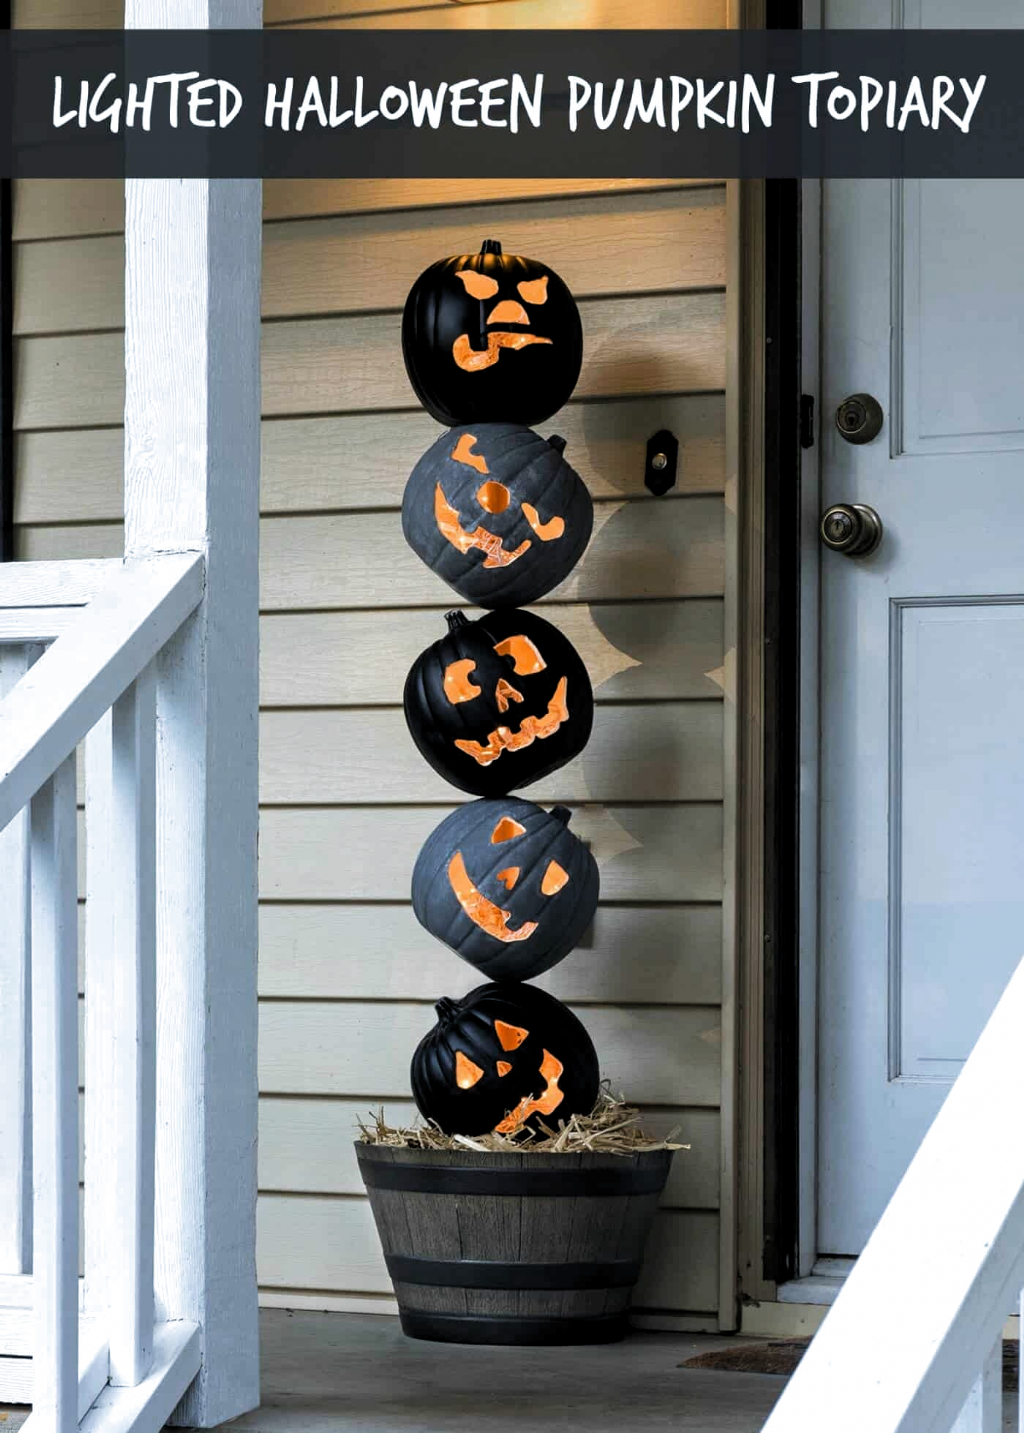 Lighted Outdoor Halloween Pumpkin Topiary DIY Candy in